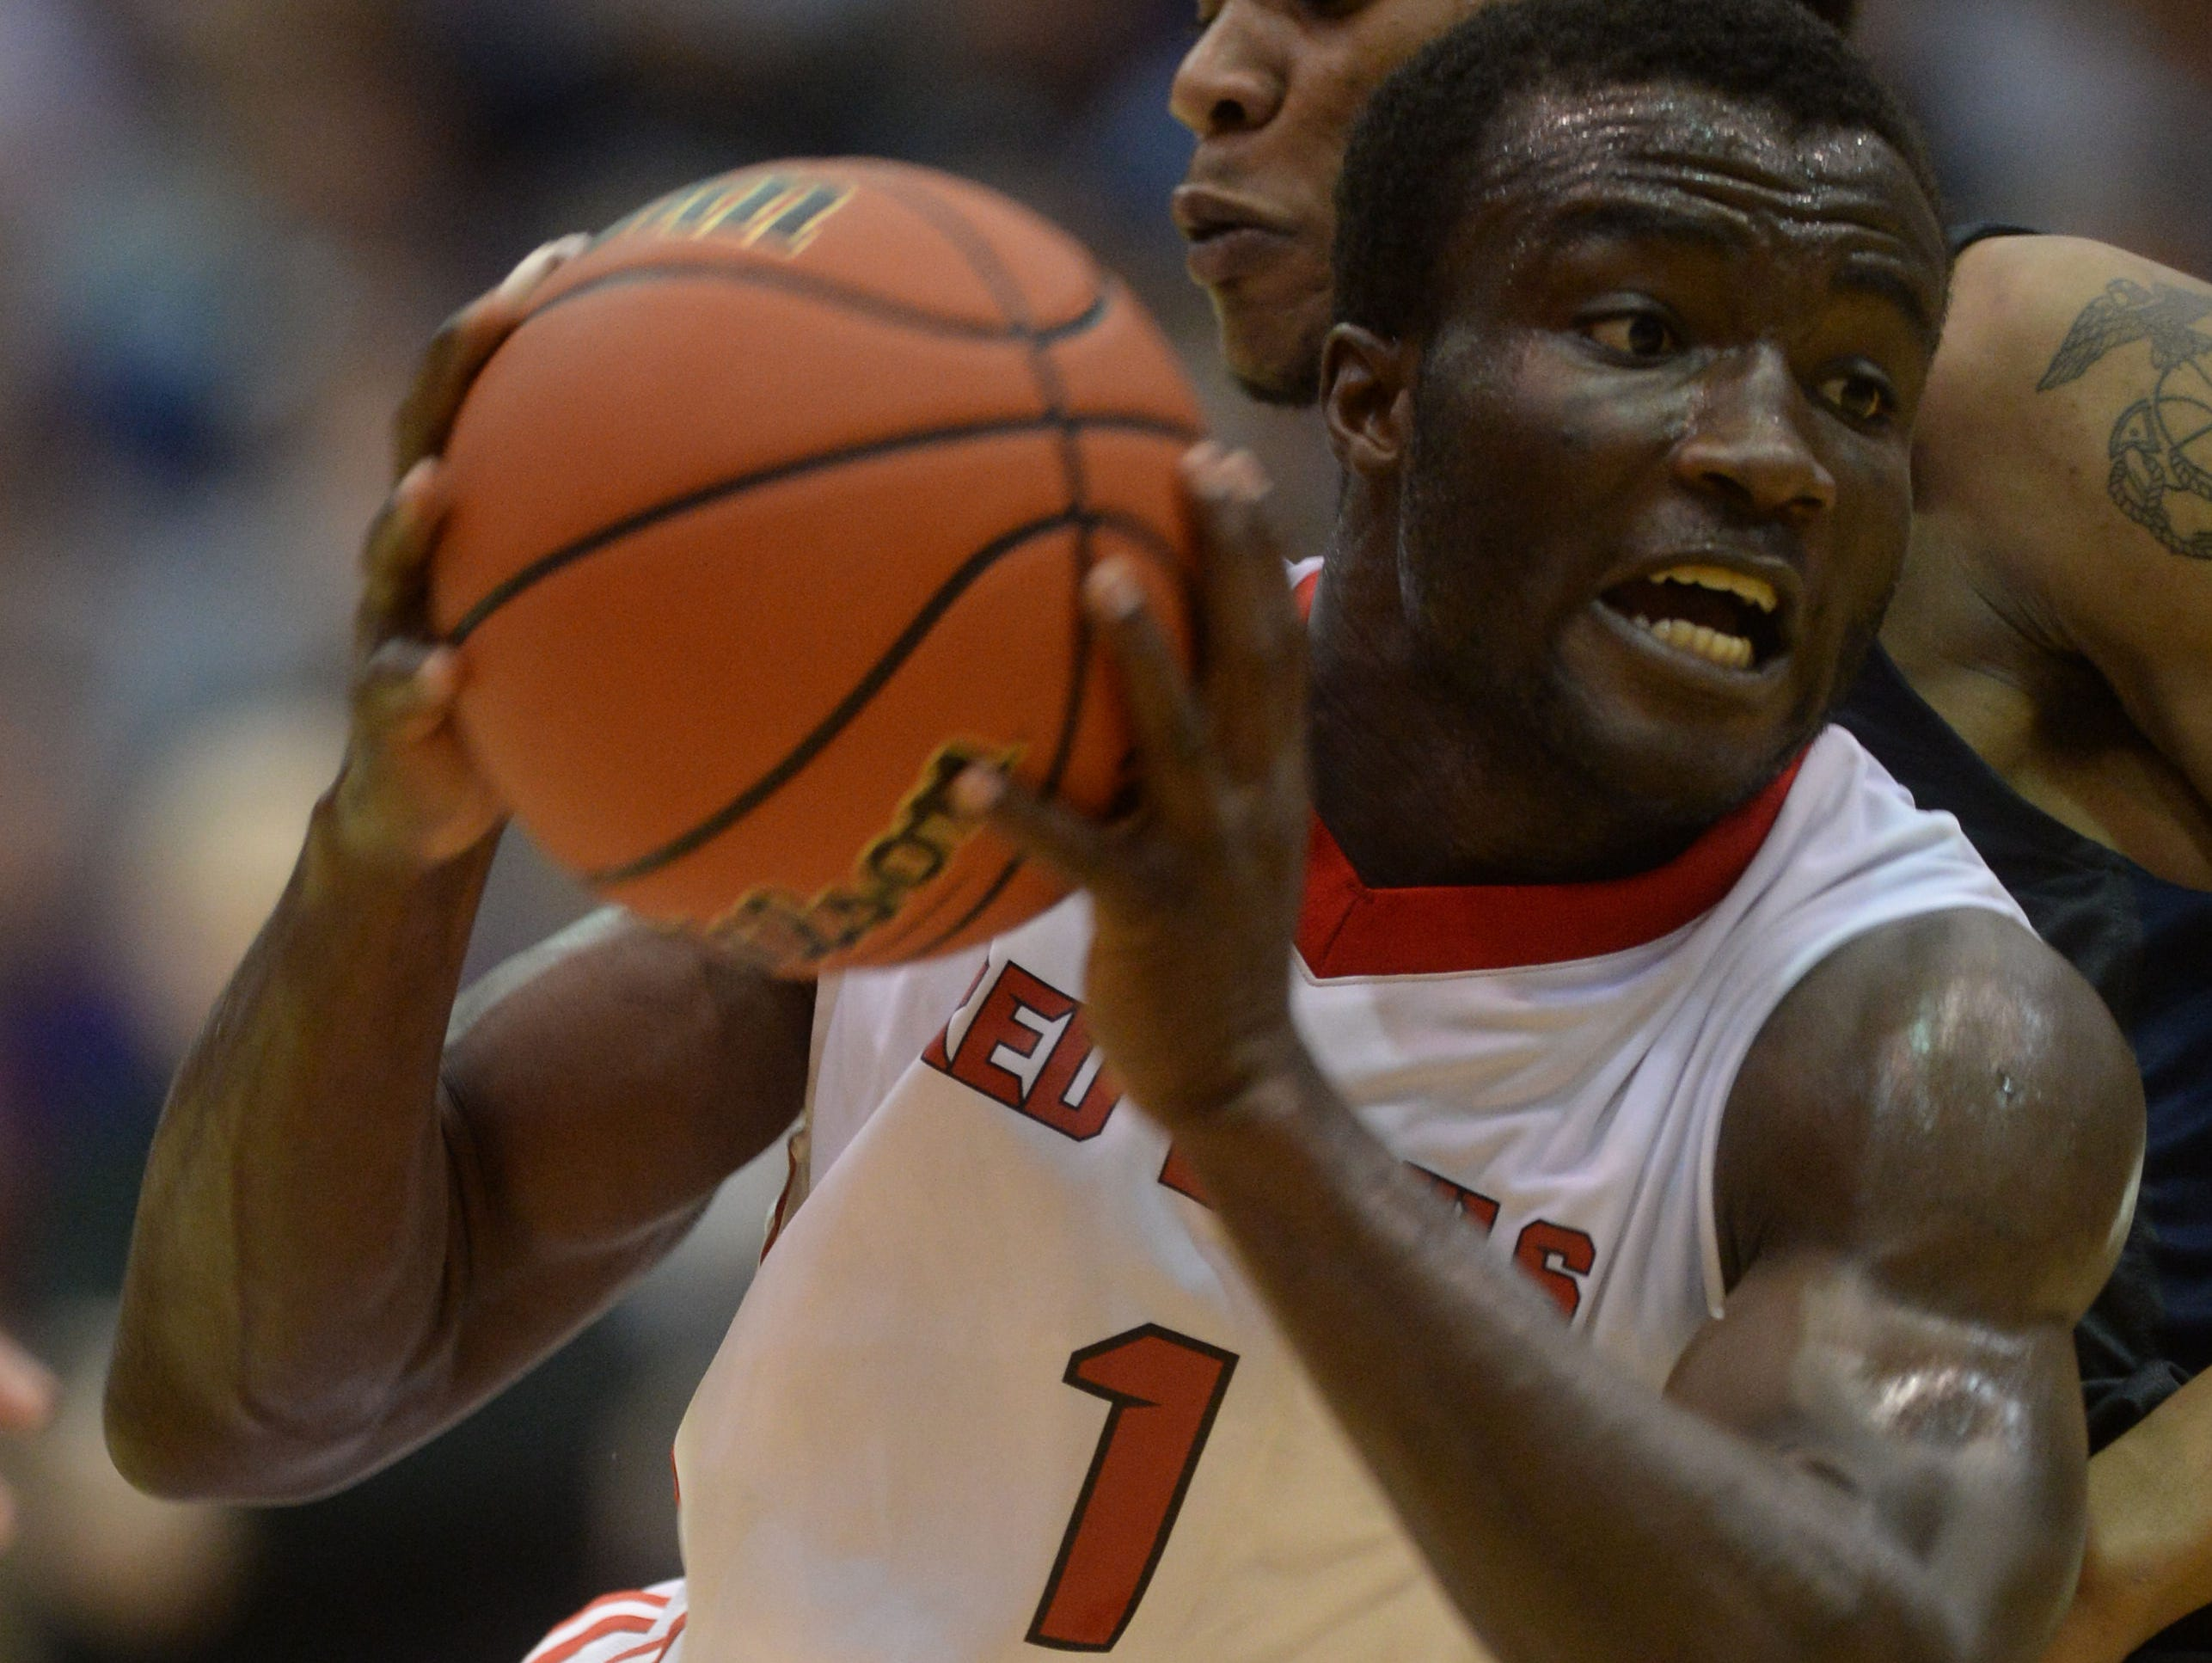 Richmond's Joel Okafor is one among those invited to the Top 60 workout on April 12.